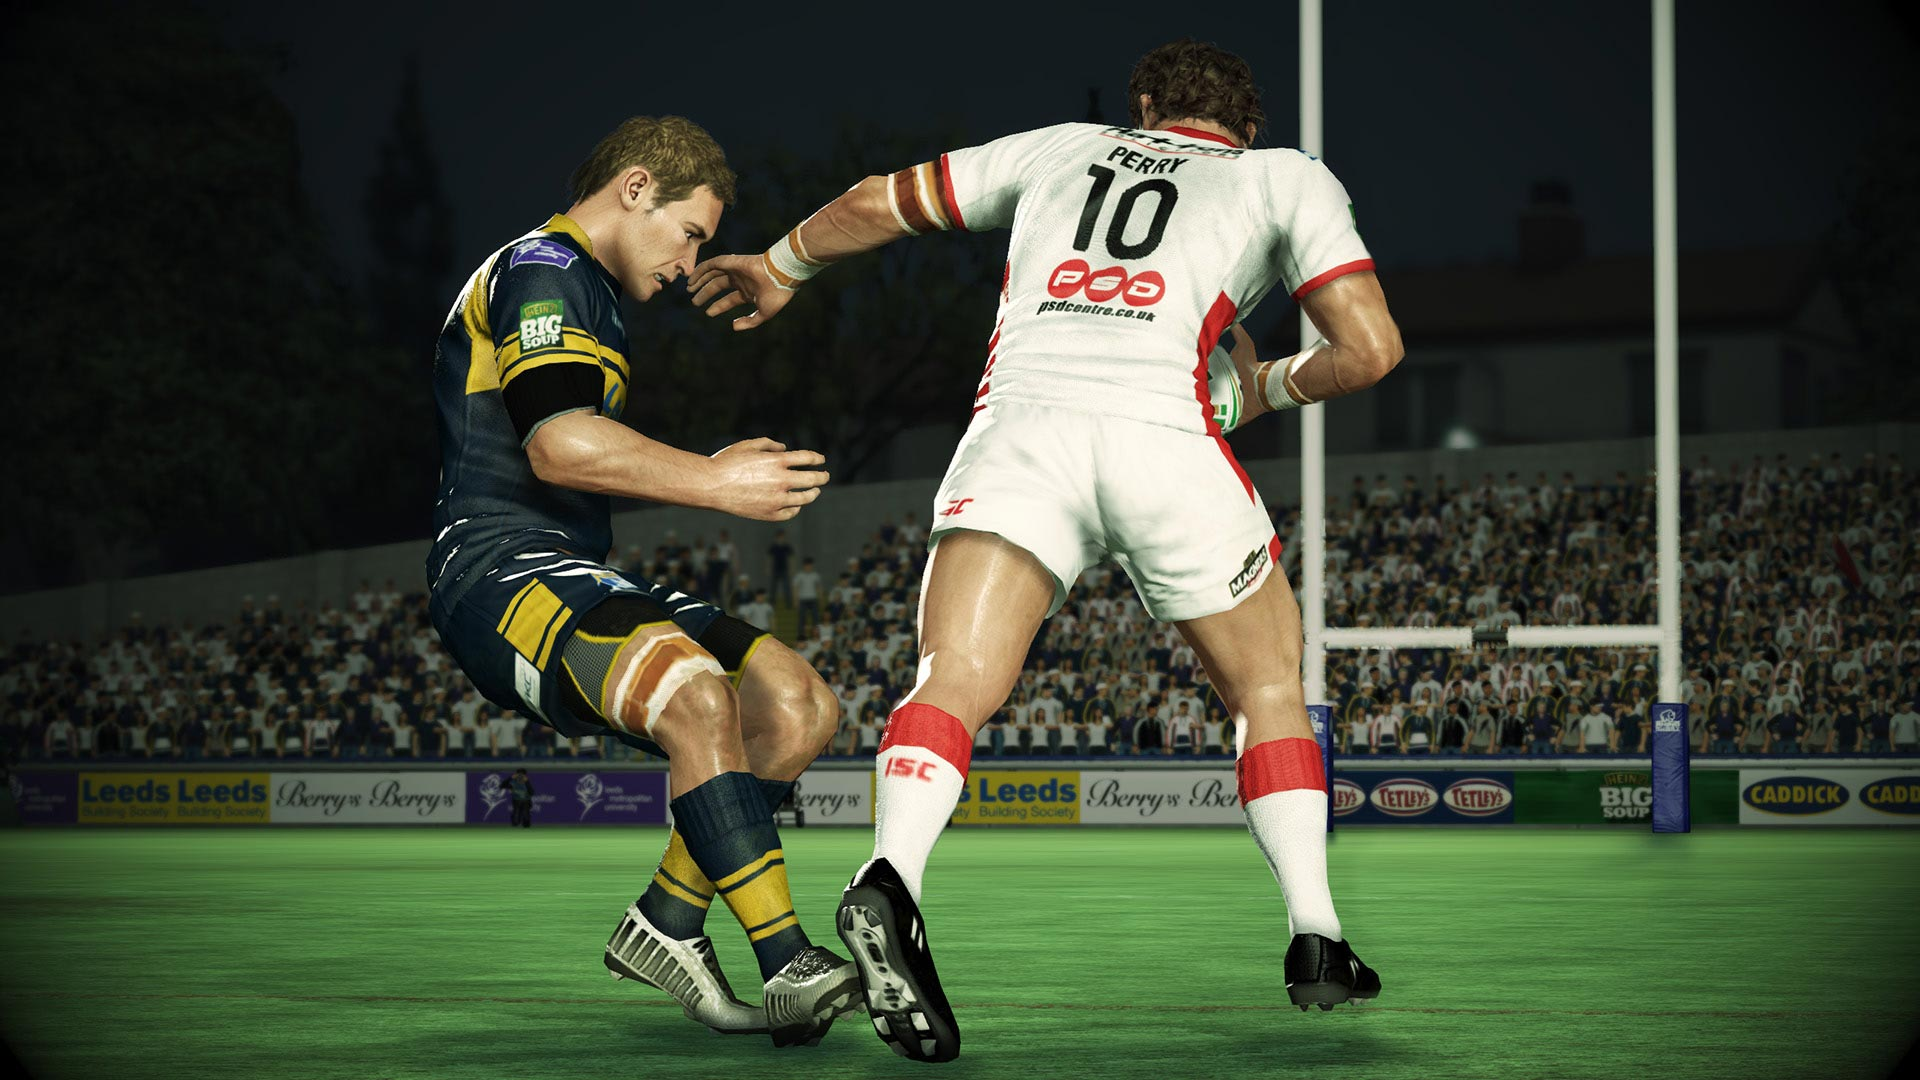 Rugby League Live 2 Xbox 360 Patch